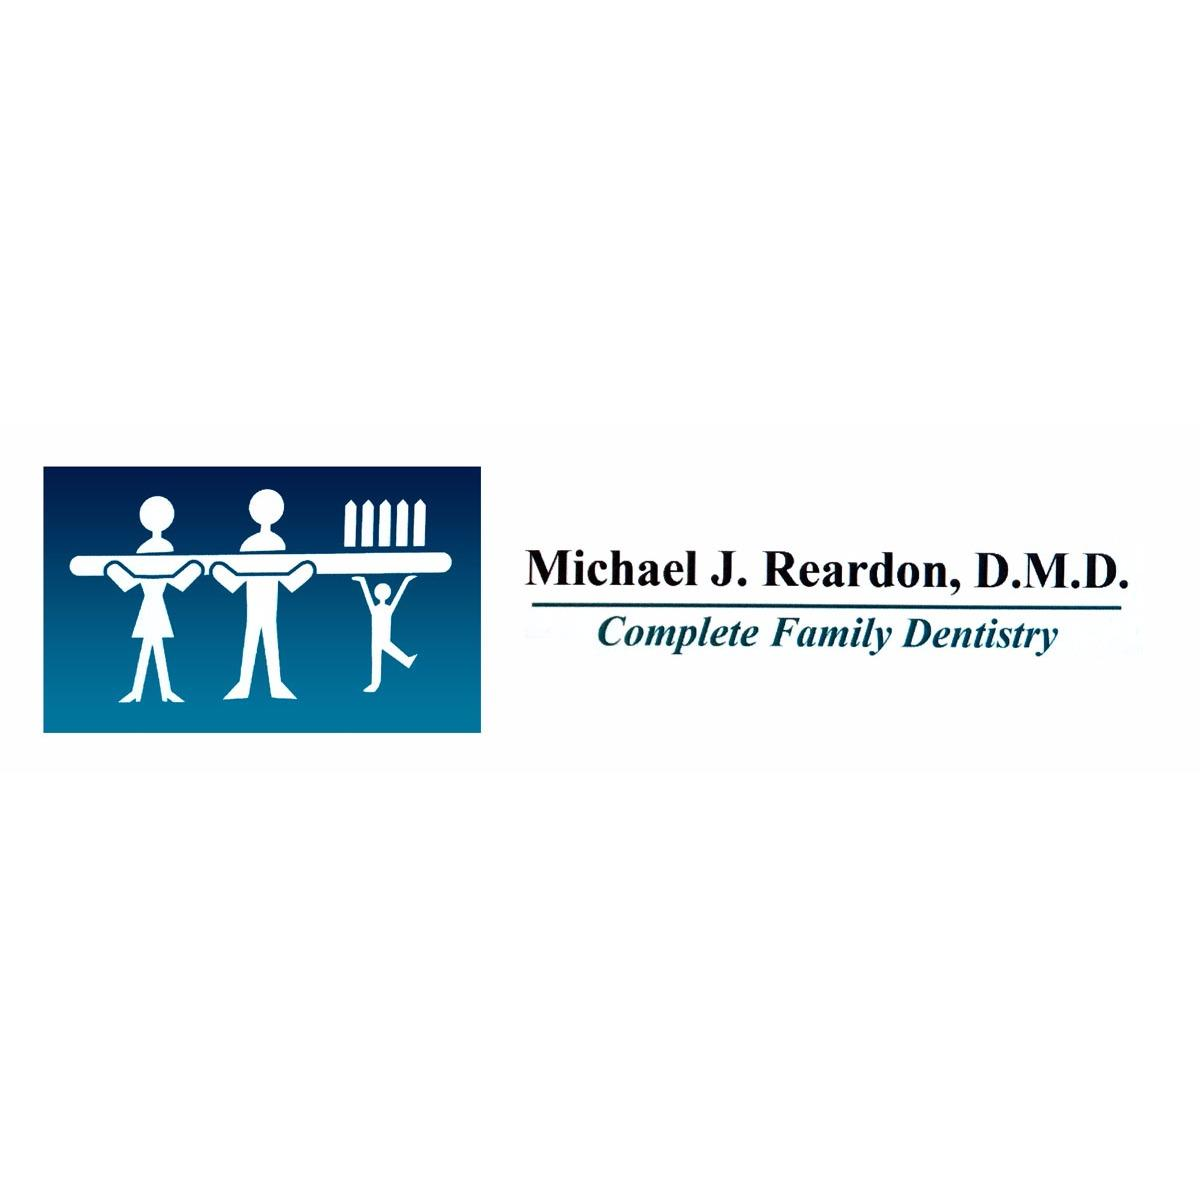 Michael J. Reardon, DMD